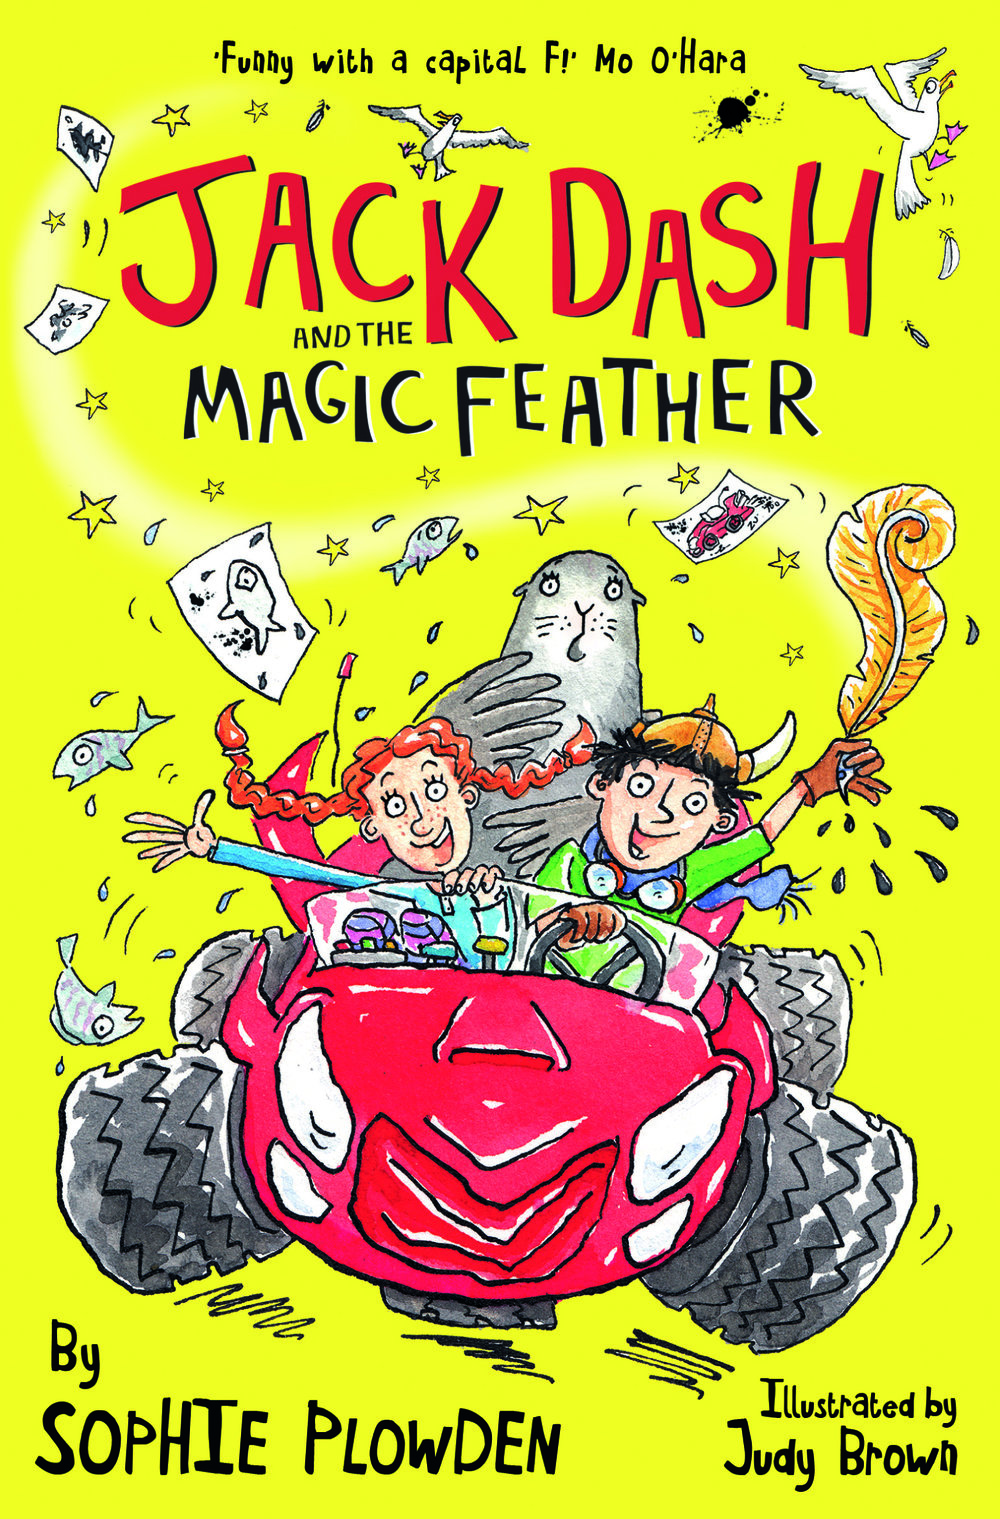 Jack Dash and the Magic Feather illustrated by Judy Brown